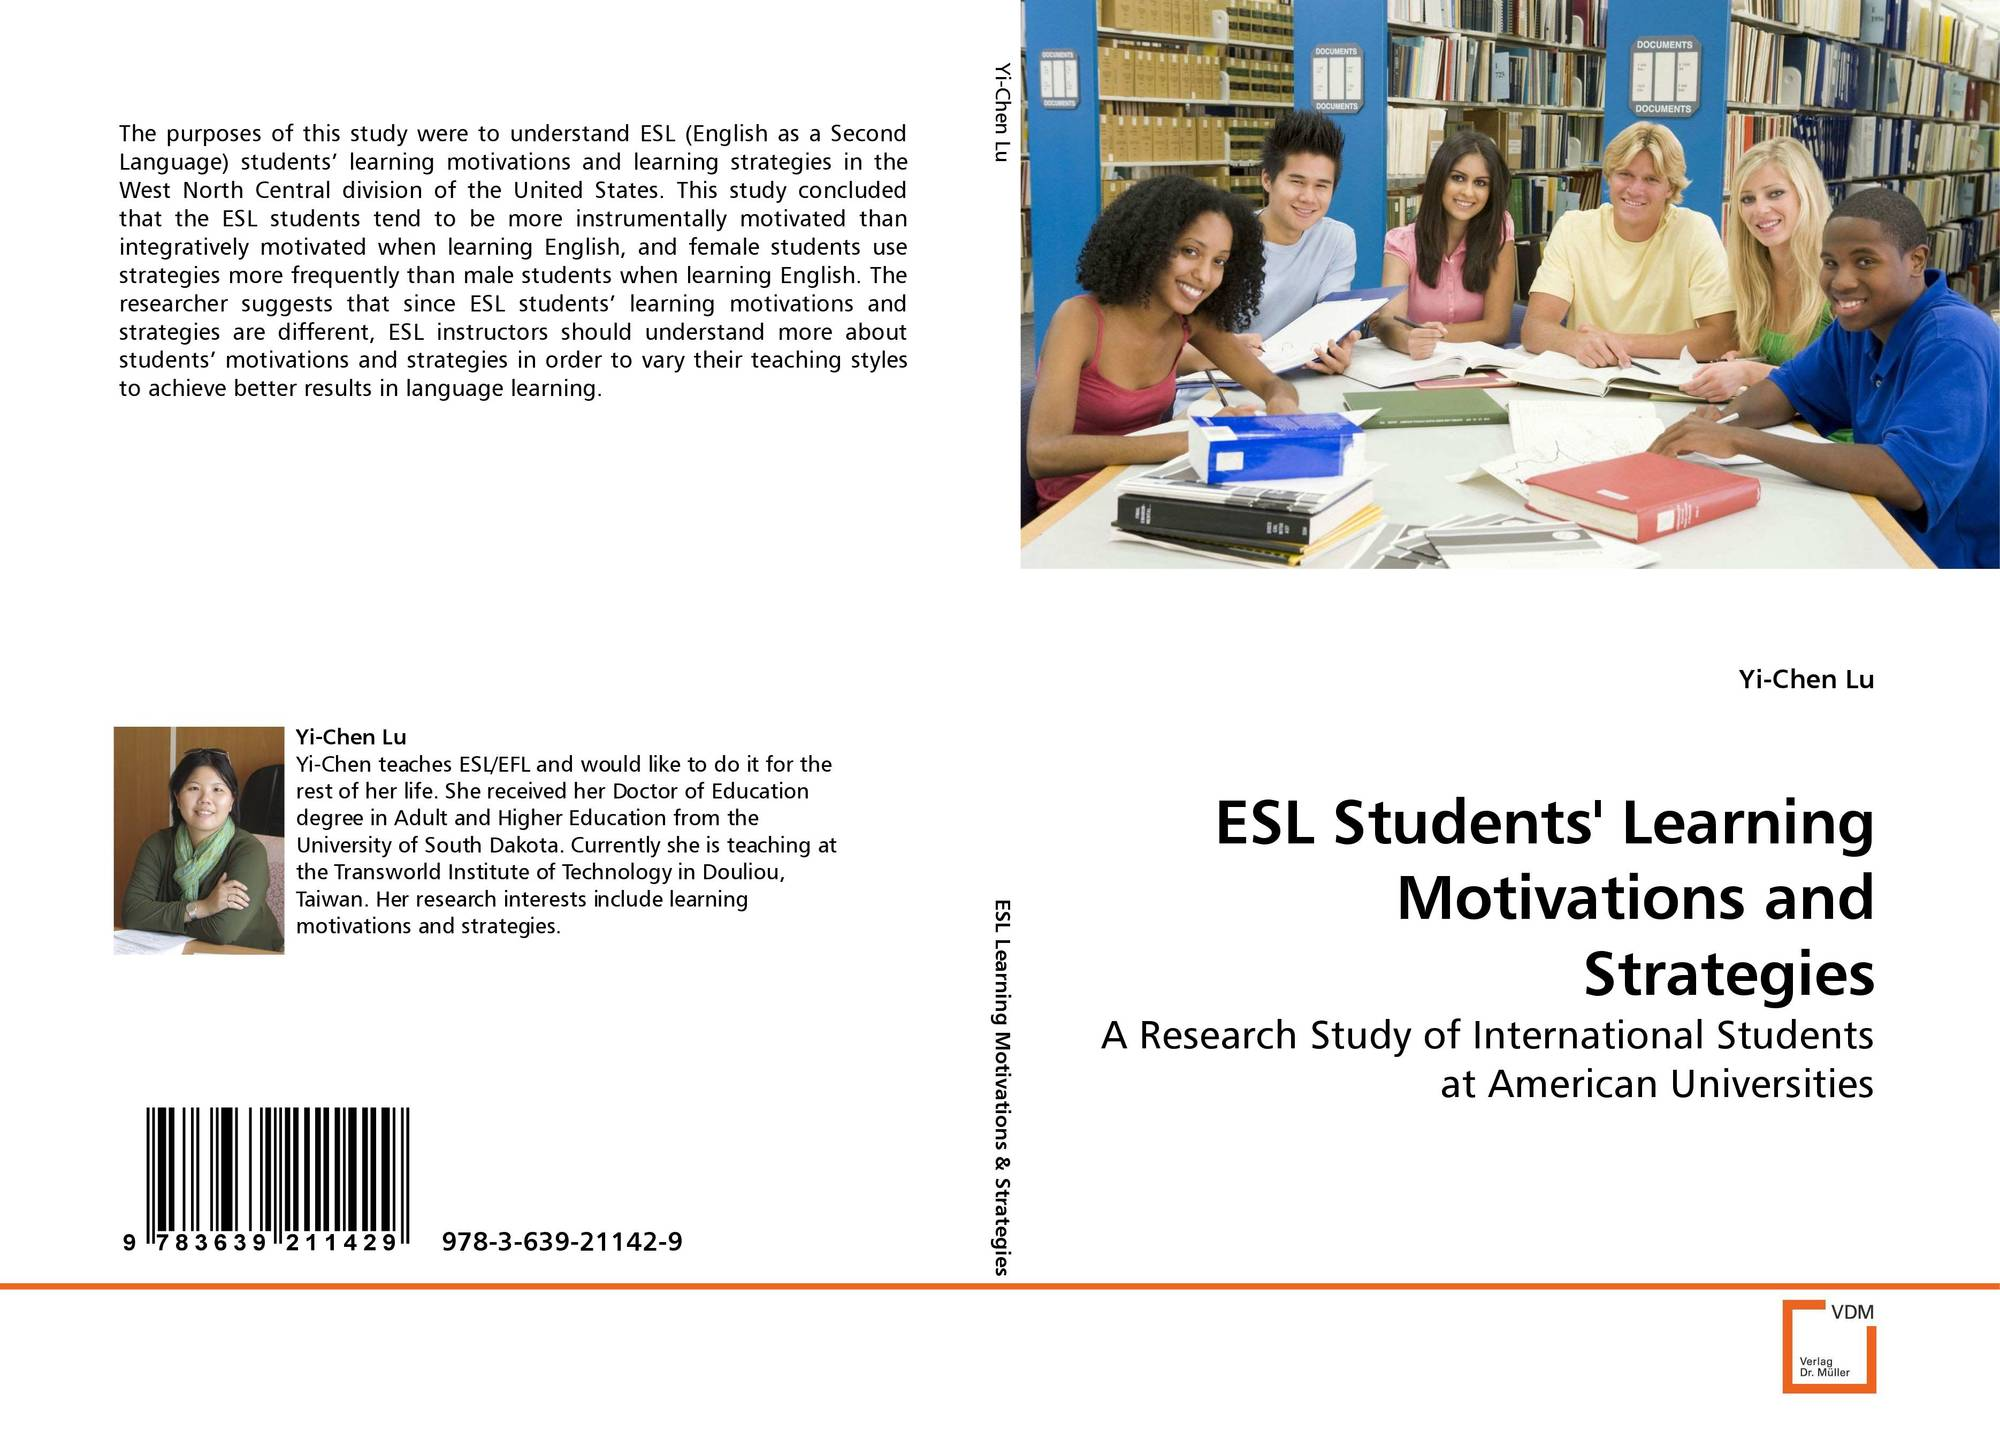 the motivation and language learning strategies Carla working paper #14 by elizabeth root motivation and learning strategies in a foreign language setting: a look at a learner of korean this carla working paper is available for free download from the carla website.